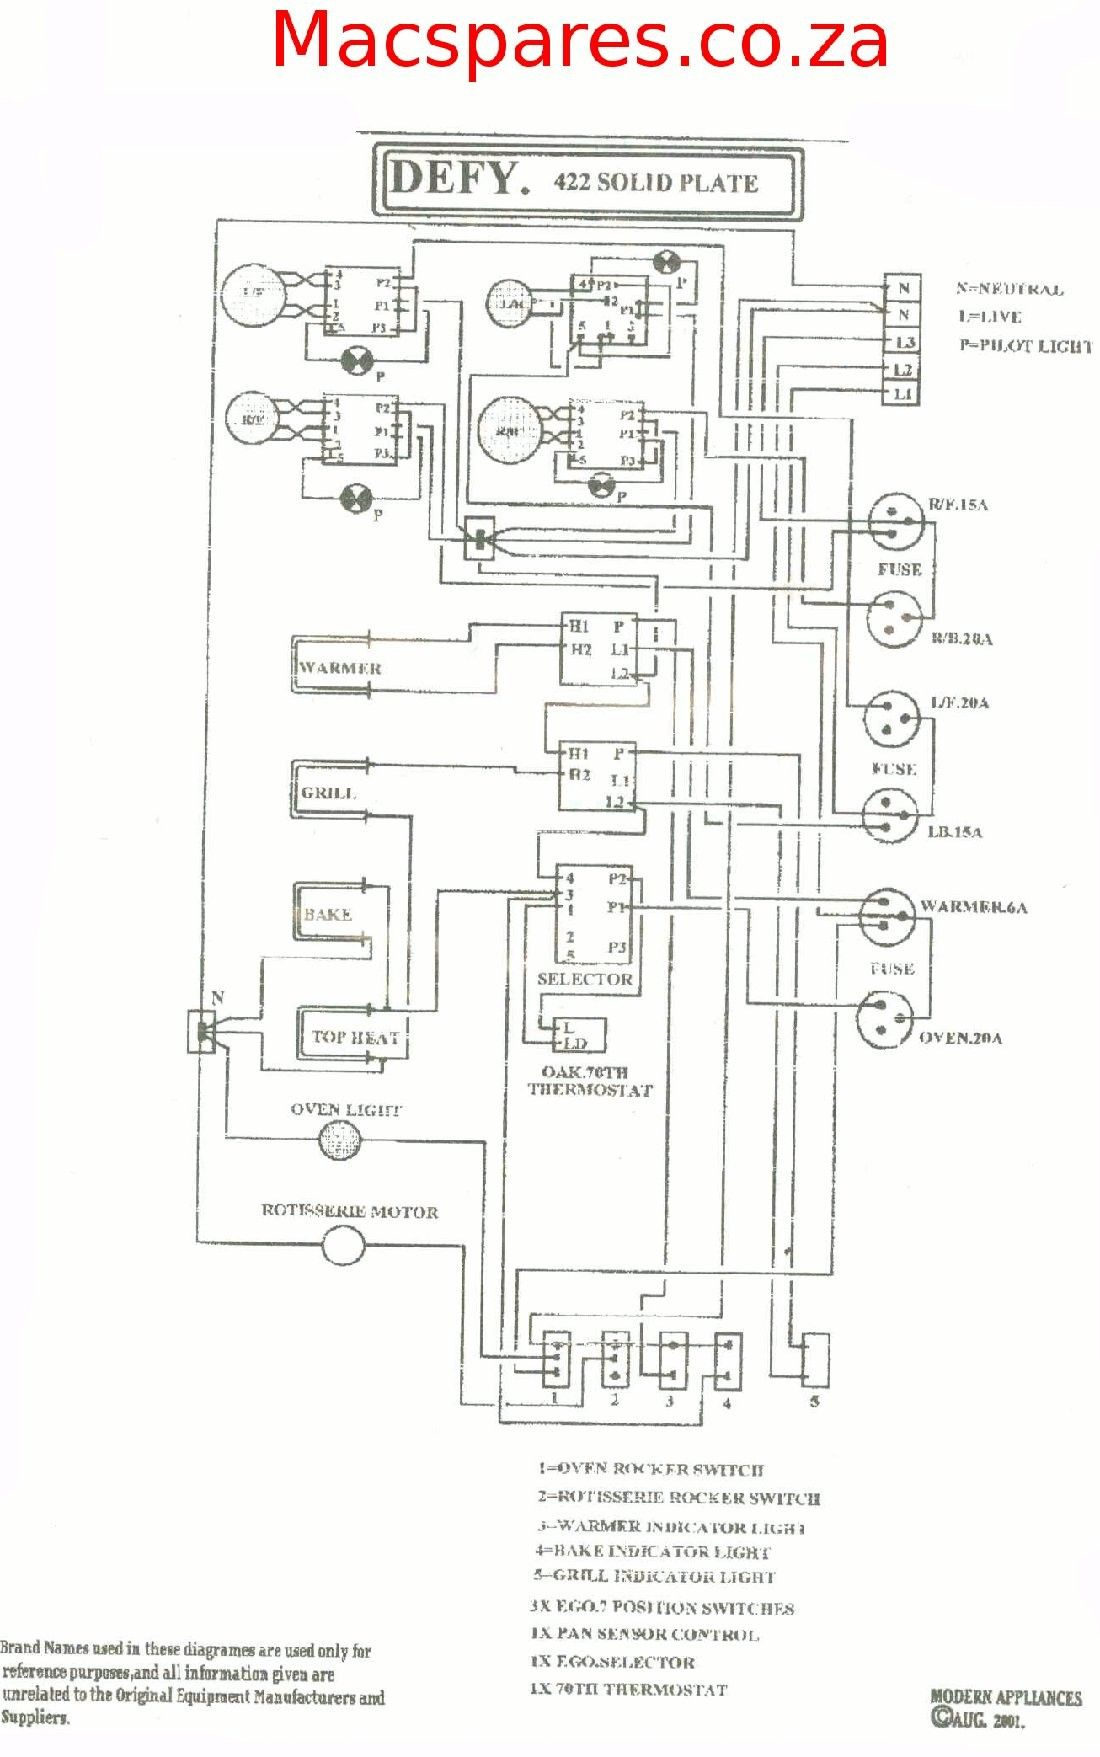 Unique Wiring Diagram For Electric Stove Outlet Diagram Diagramsample Diagramtemplate Wiringdiagram Diagramchart Wor Electric Stove Diagram Chart Diagram